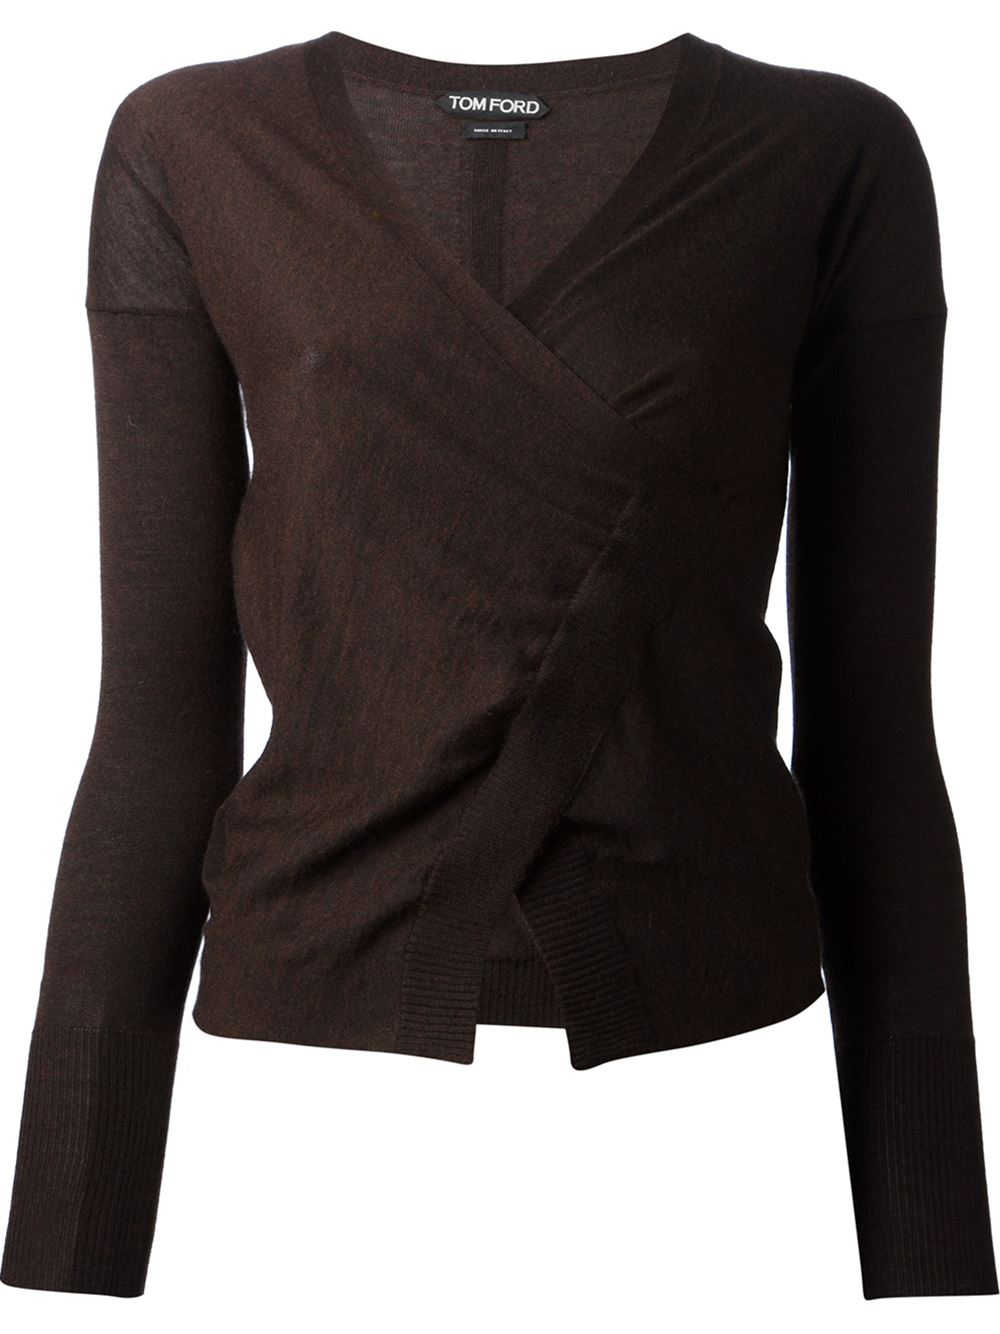 Tom ford Wrap Cardigan in Brown | Lyst